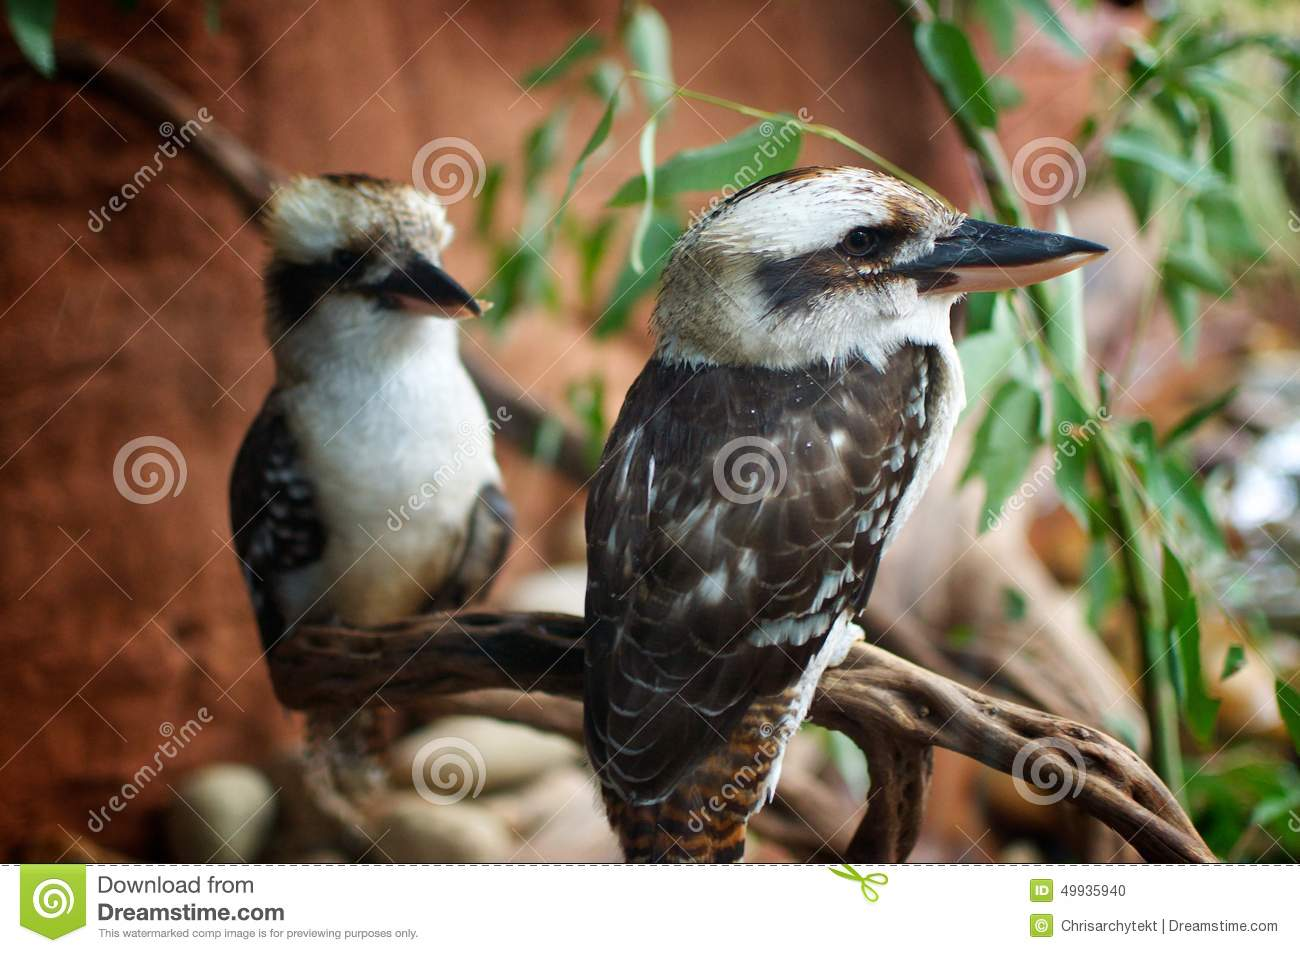 Birds Perched On Branch Stock Photo - Image: 49935940